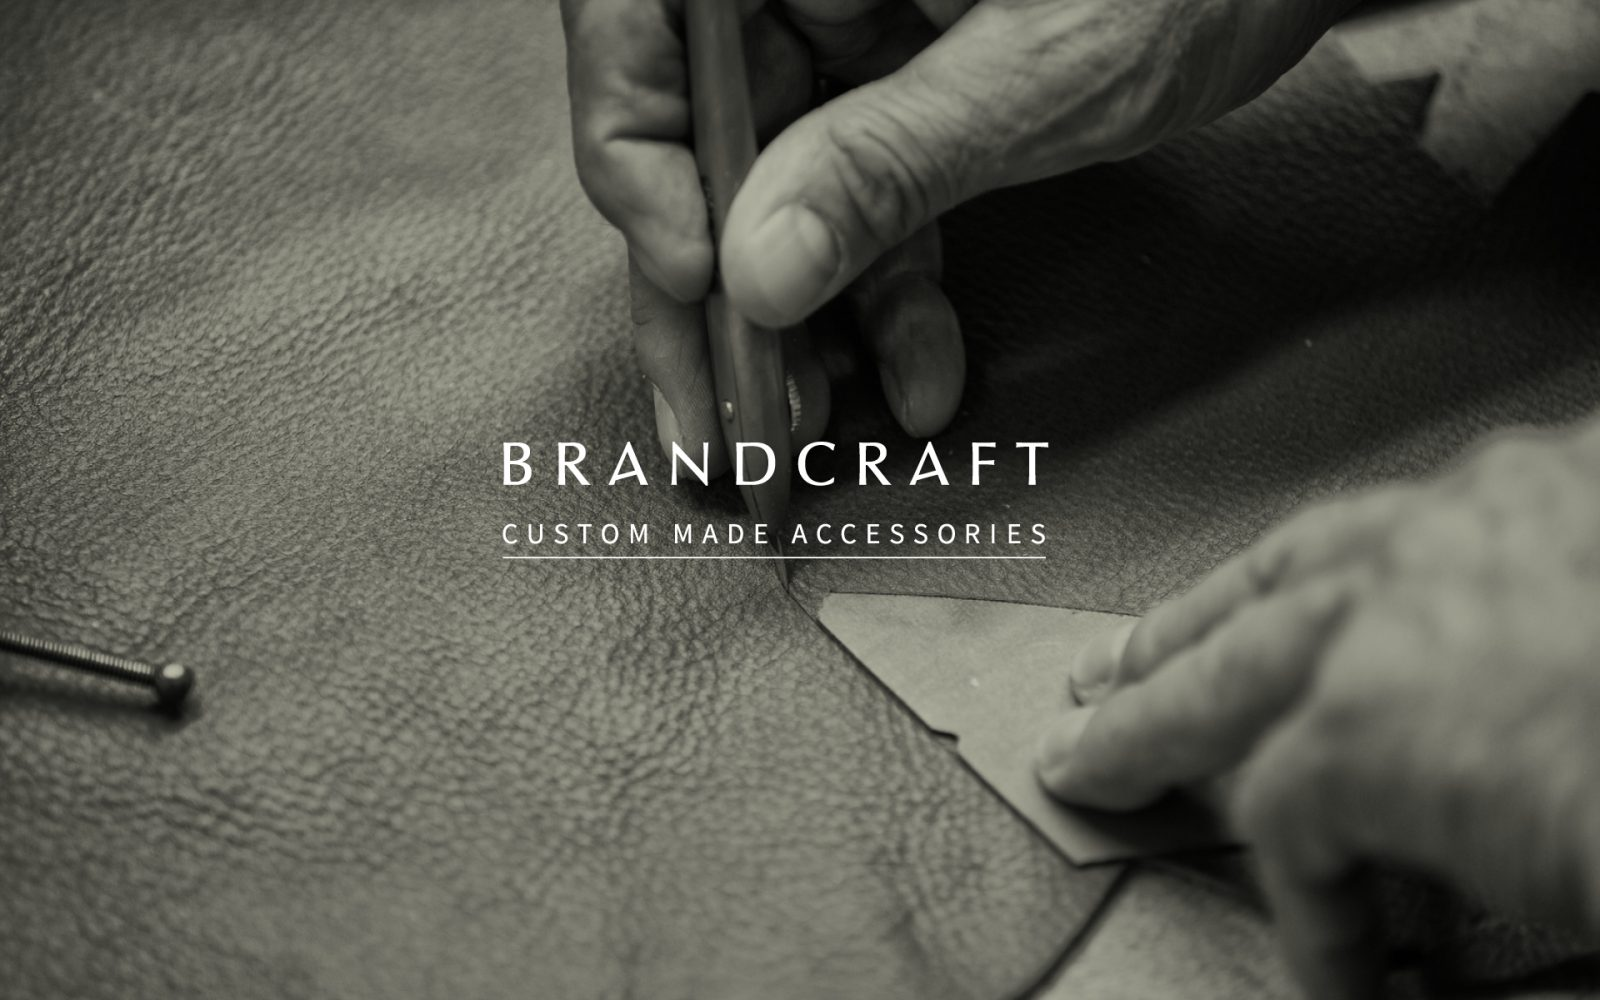 Re-branding of Premium Accessories Manufacturer Brandcraft